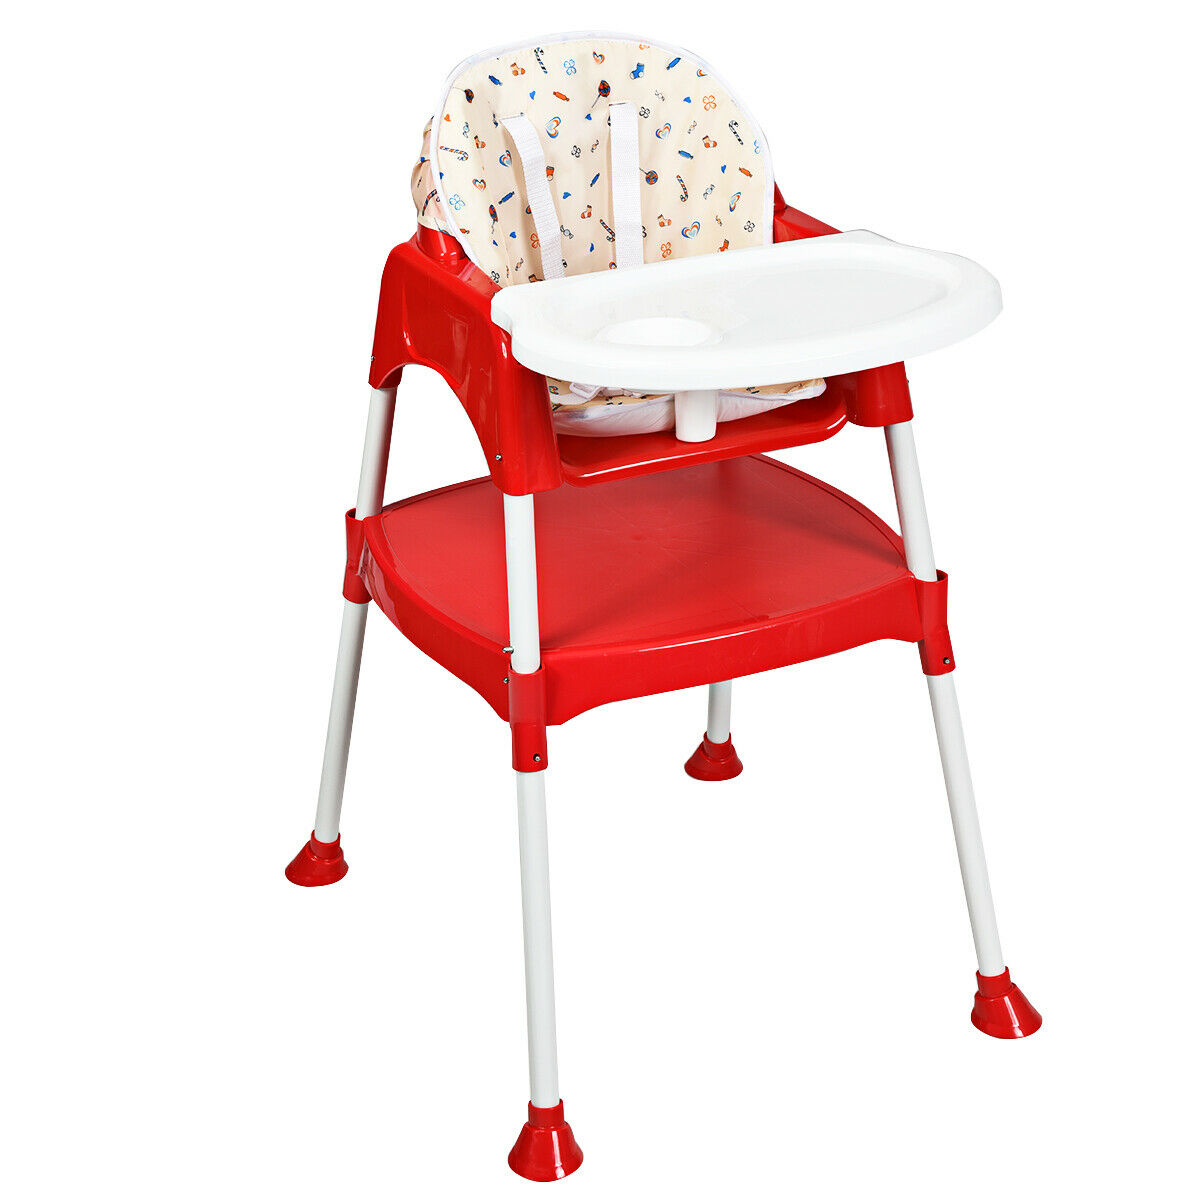 Costway 3 in 1 Baby High Chair Convertible Table Seat Booster Toddler Feeding Highchair by Costway